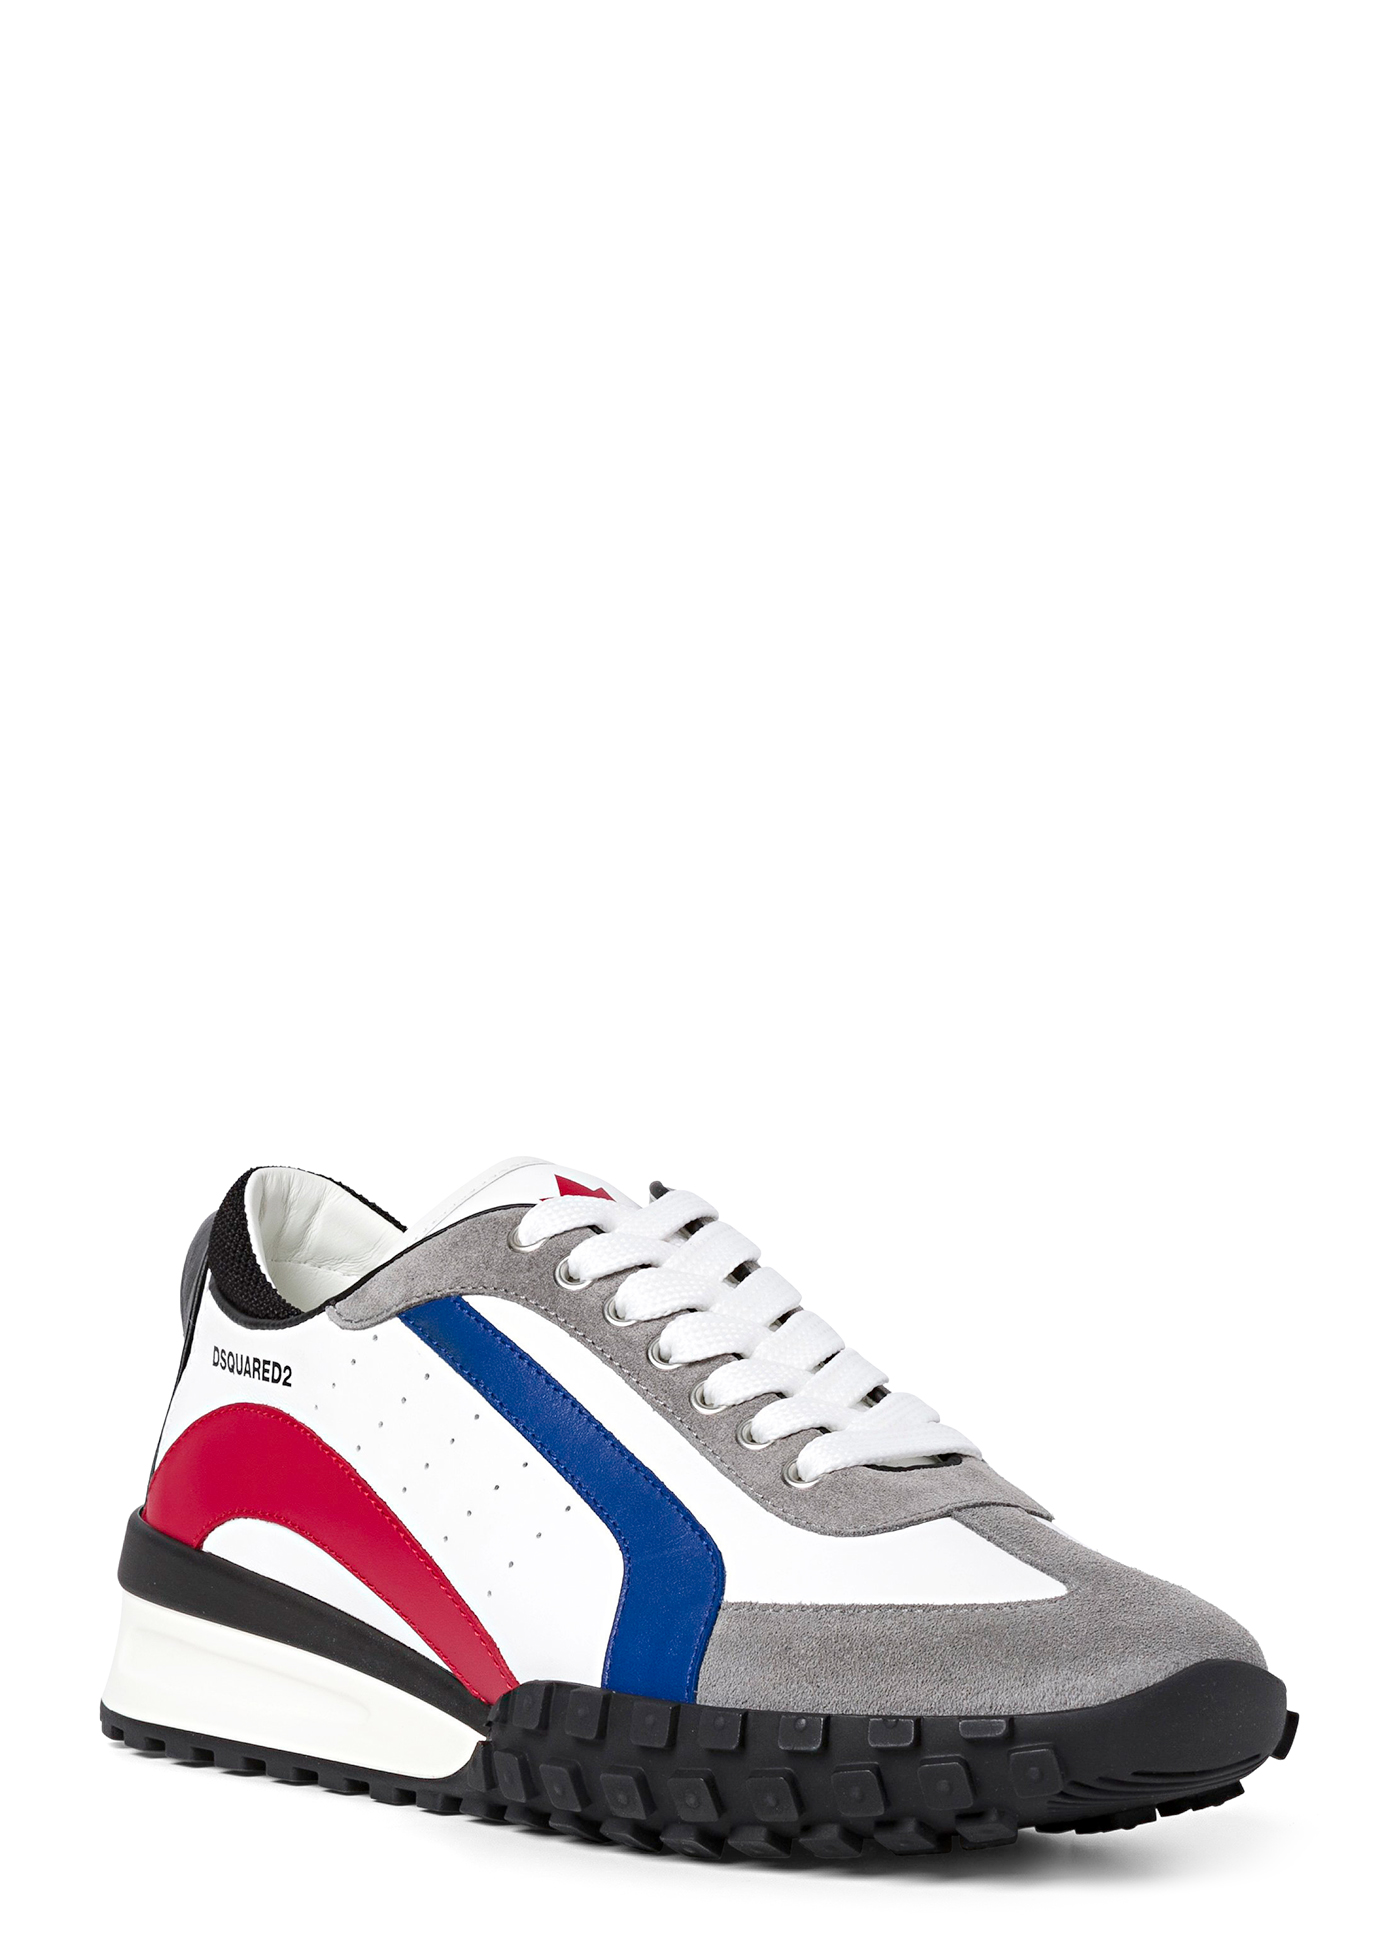 LEGEND W/ WAVE SNEAKERS image number 1